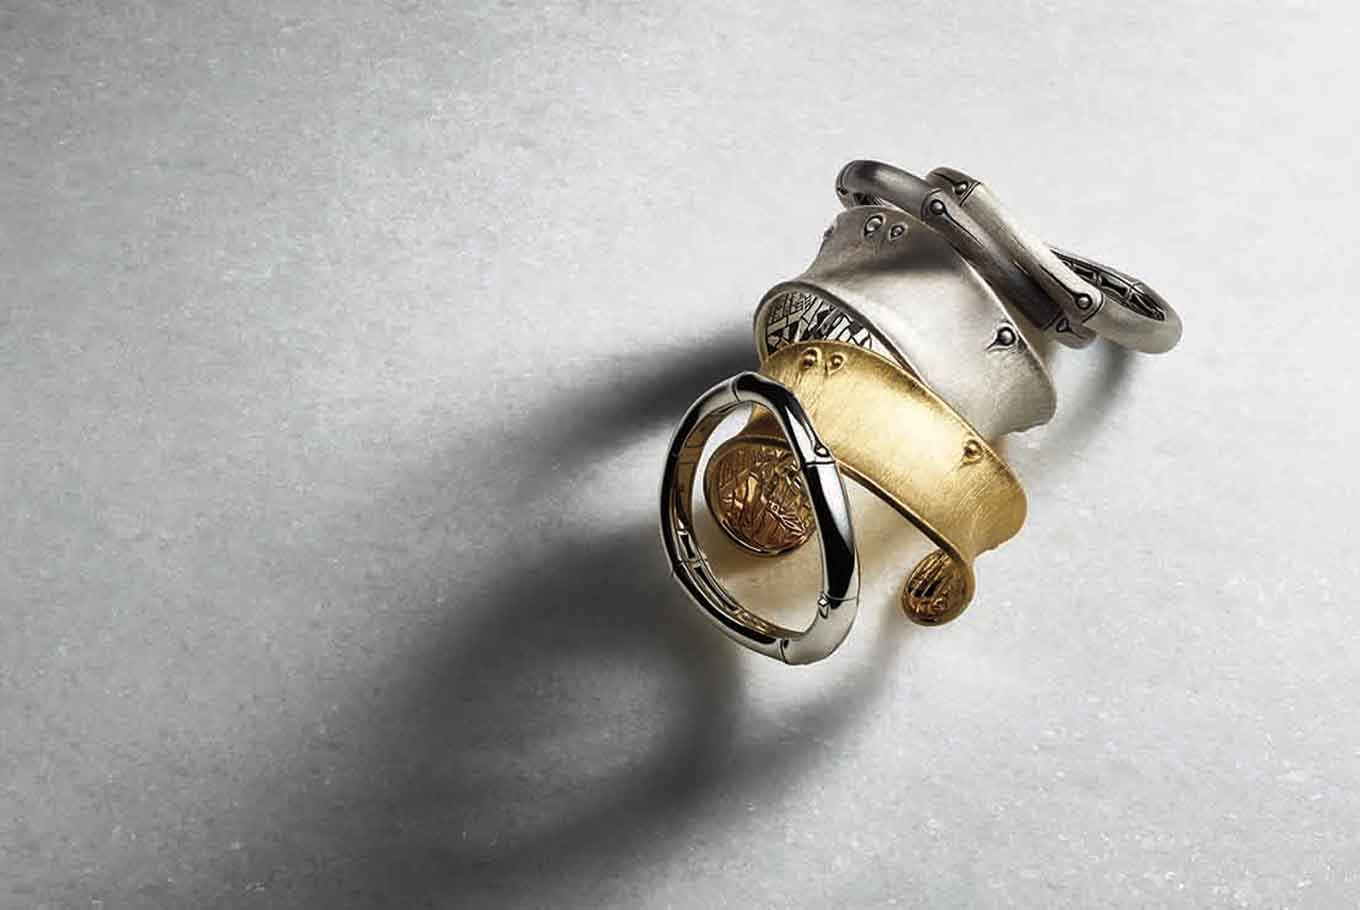 Bali Based John Hardy Unveils Jewelry Collection For